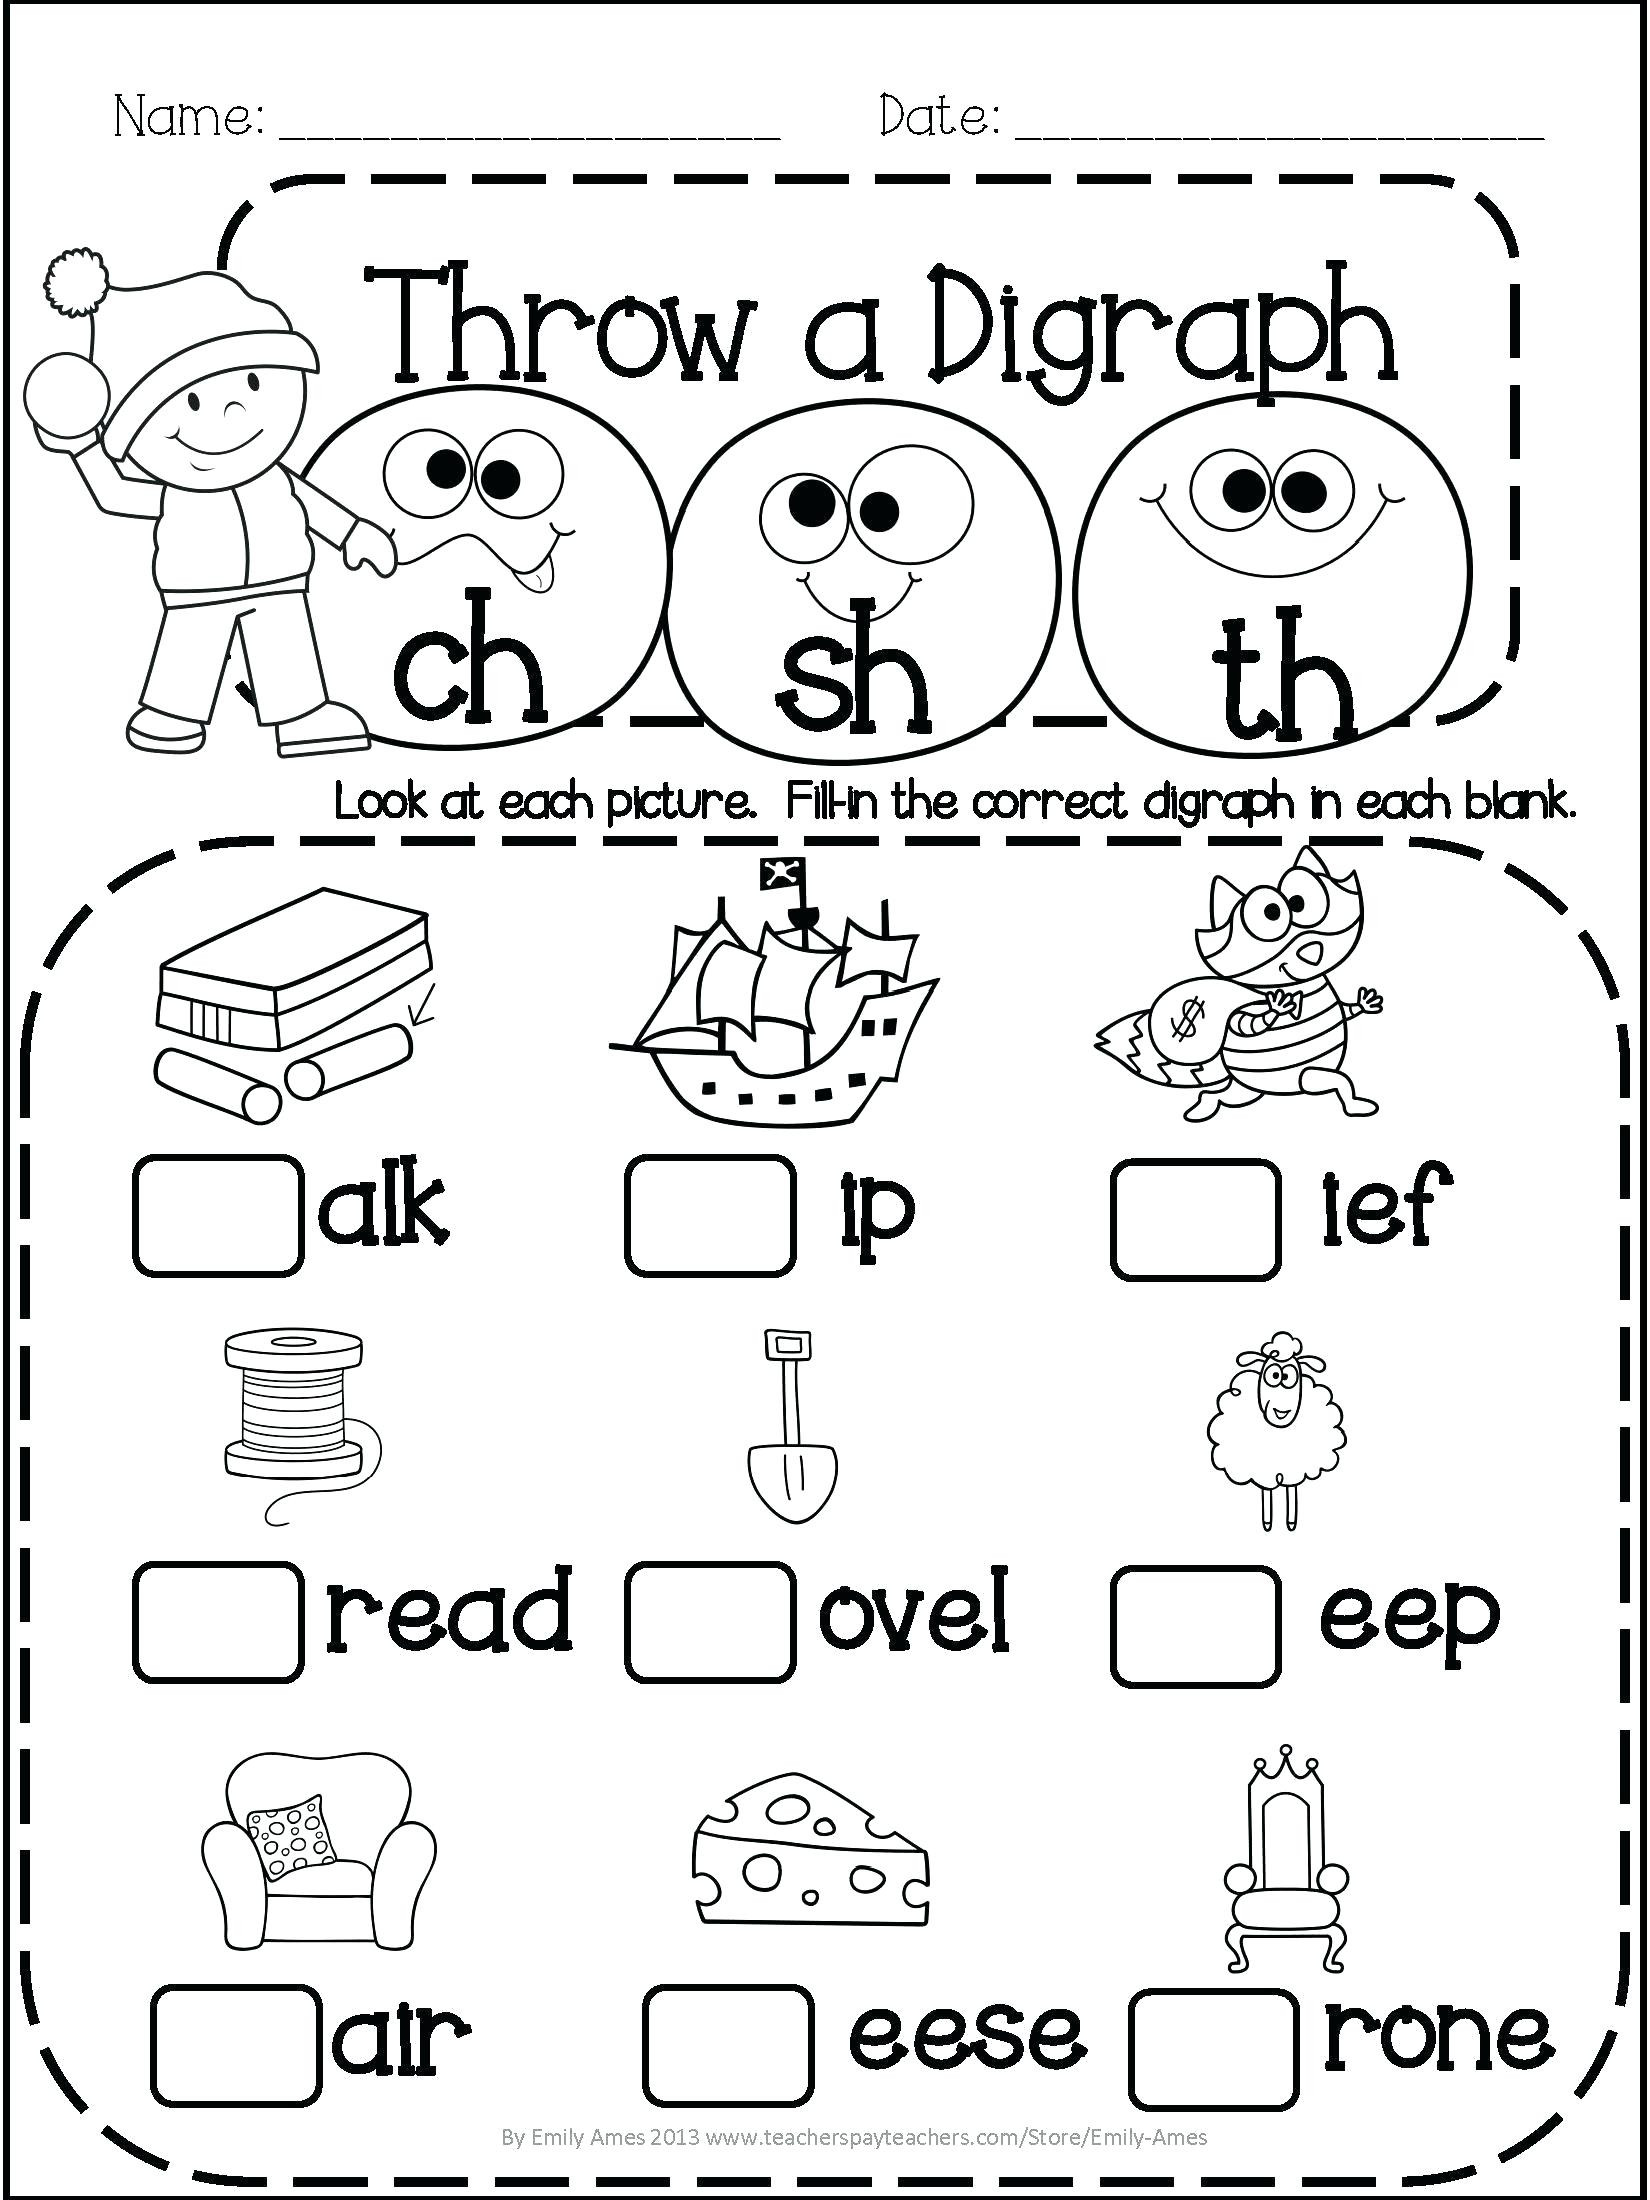 Addition Worksheets for 1st Grade Generationinitiative Free Printable Math Worksheets 5th